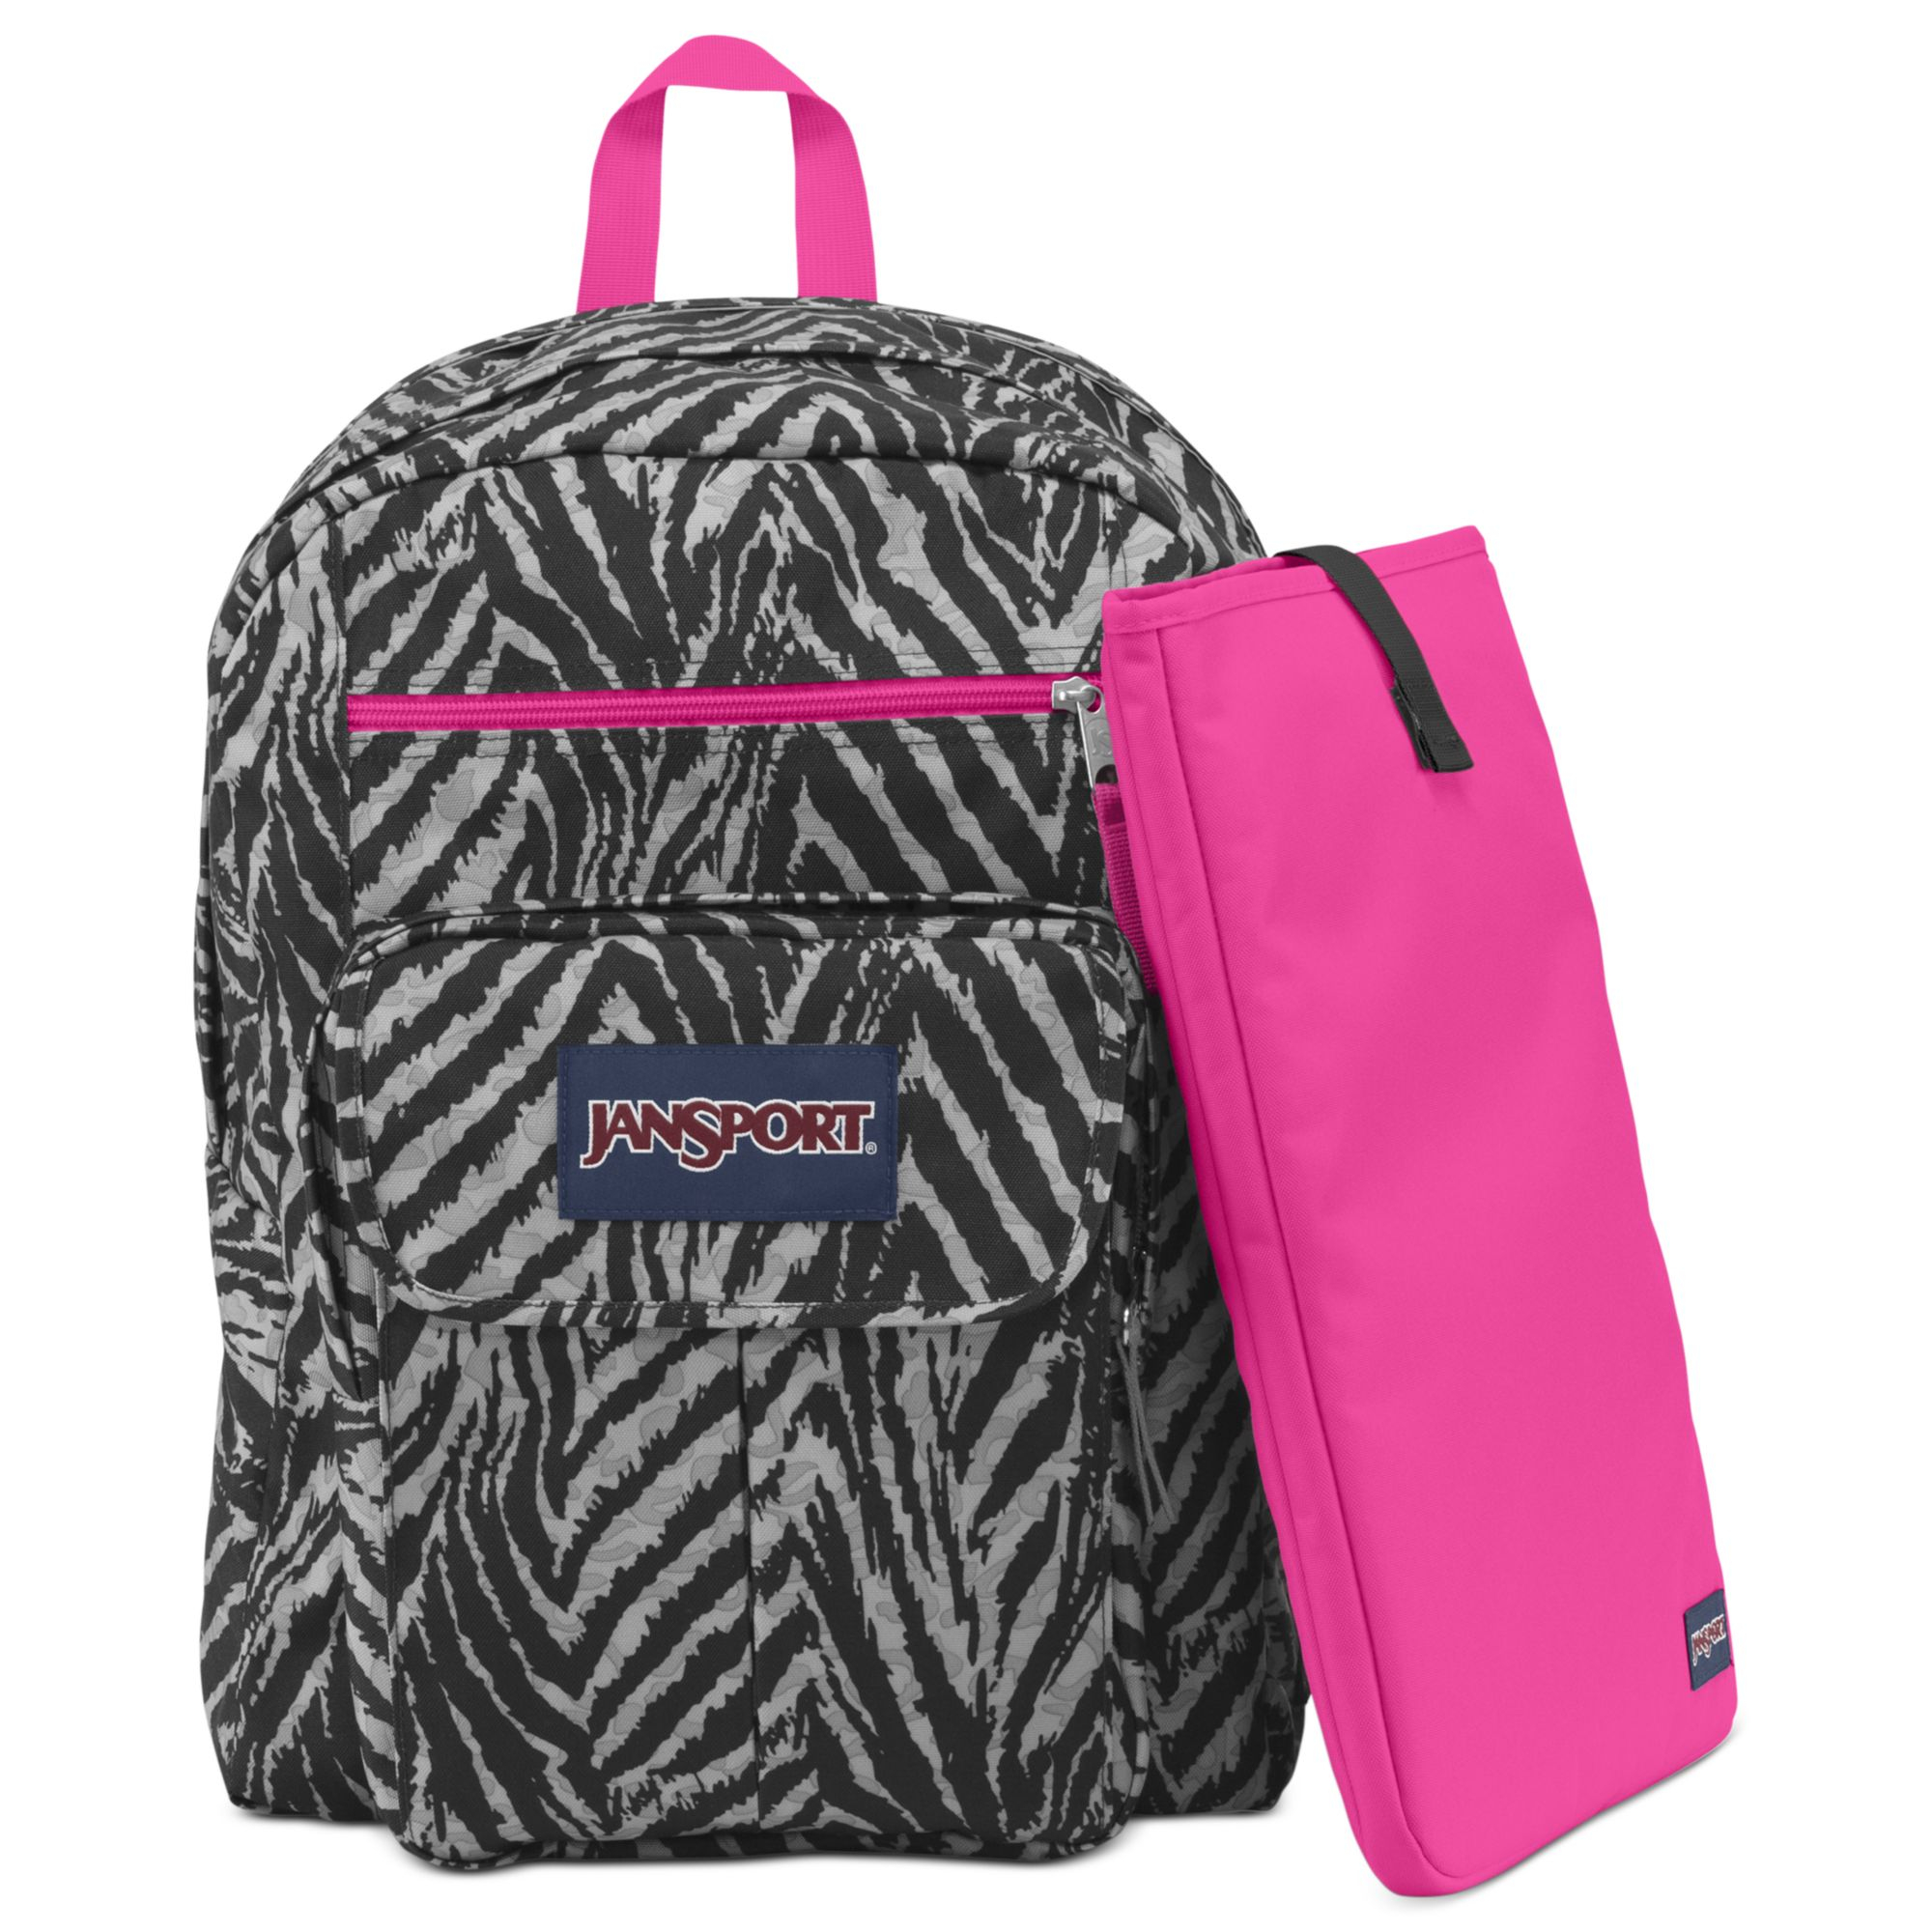 Jansport Backpacks On Sale oCuIRhP2